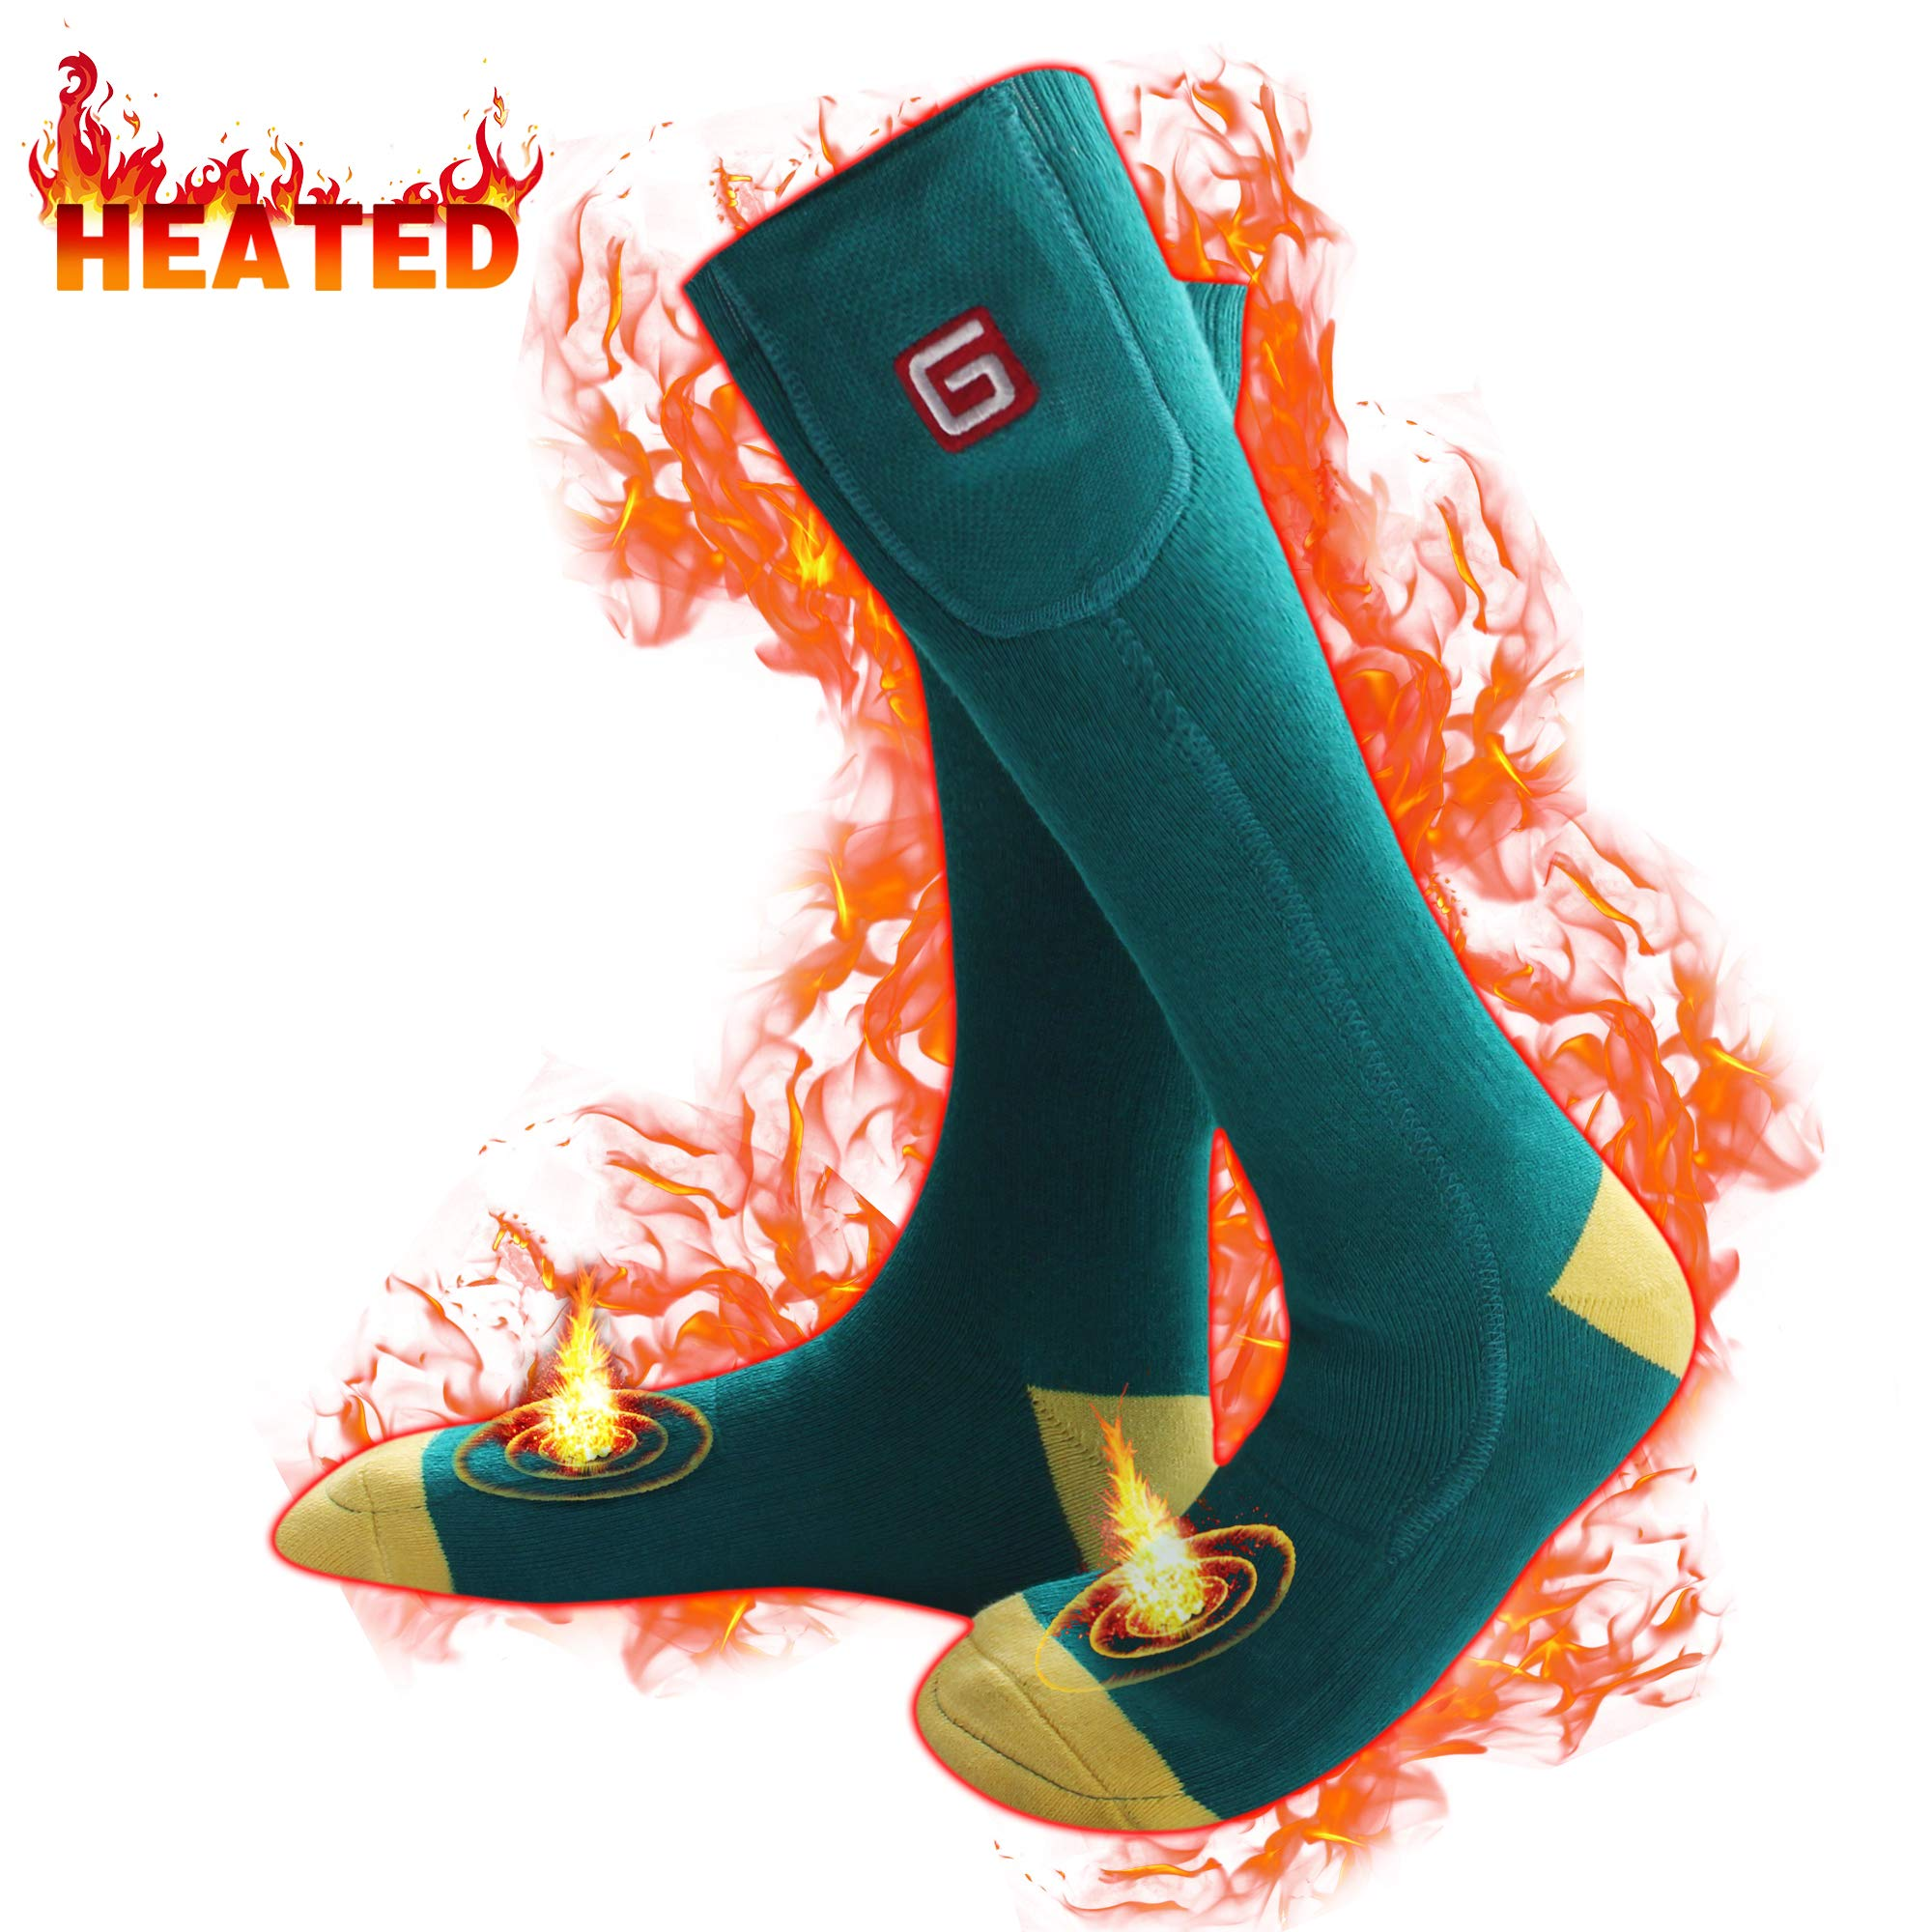 Men's Heated Hiking Socks for Cold Weather Rechargeable Batteries Thermal Insulated Foot Warmers for Chronically Cold Feet,Perfect for Hunting Hiking Shredding, Riding Electric Batteries(Green-yellow) by MMlove